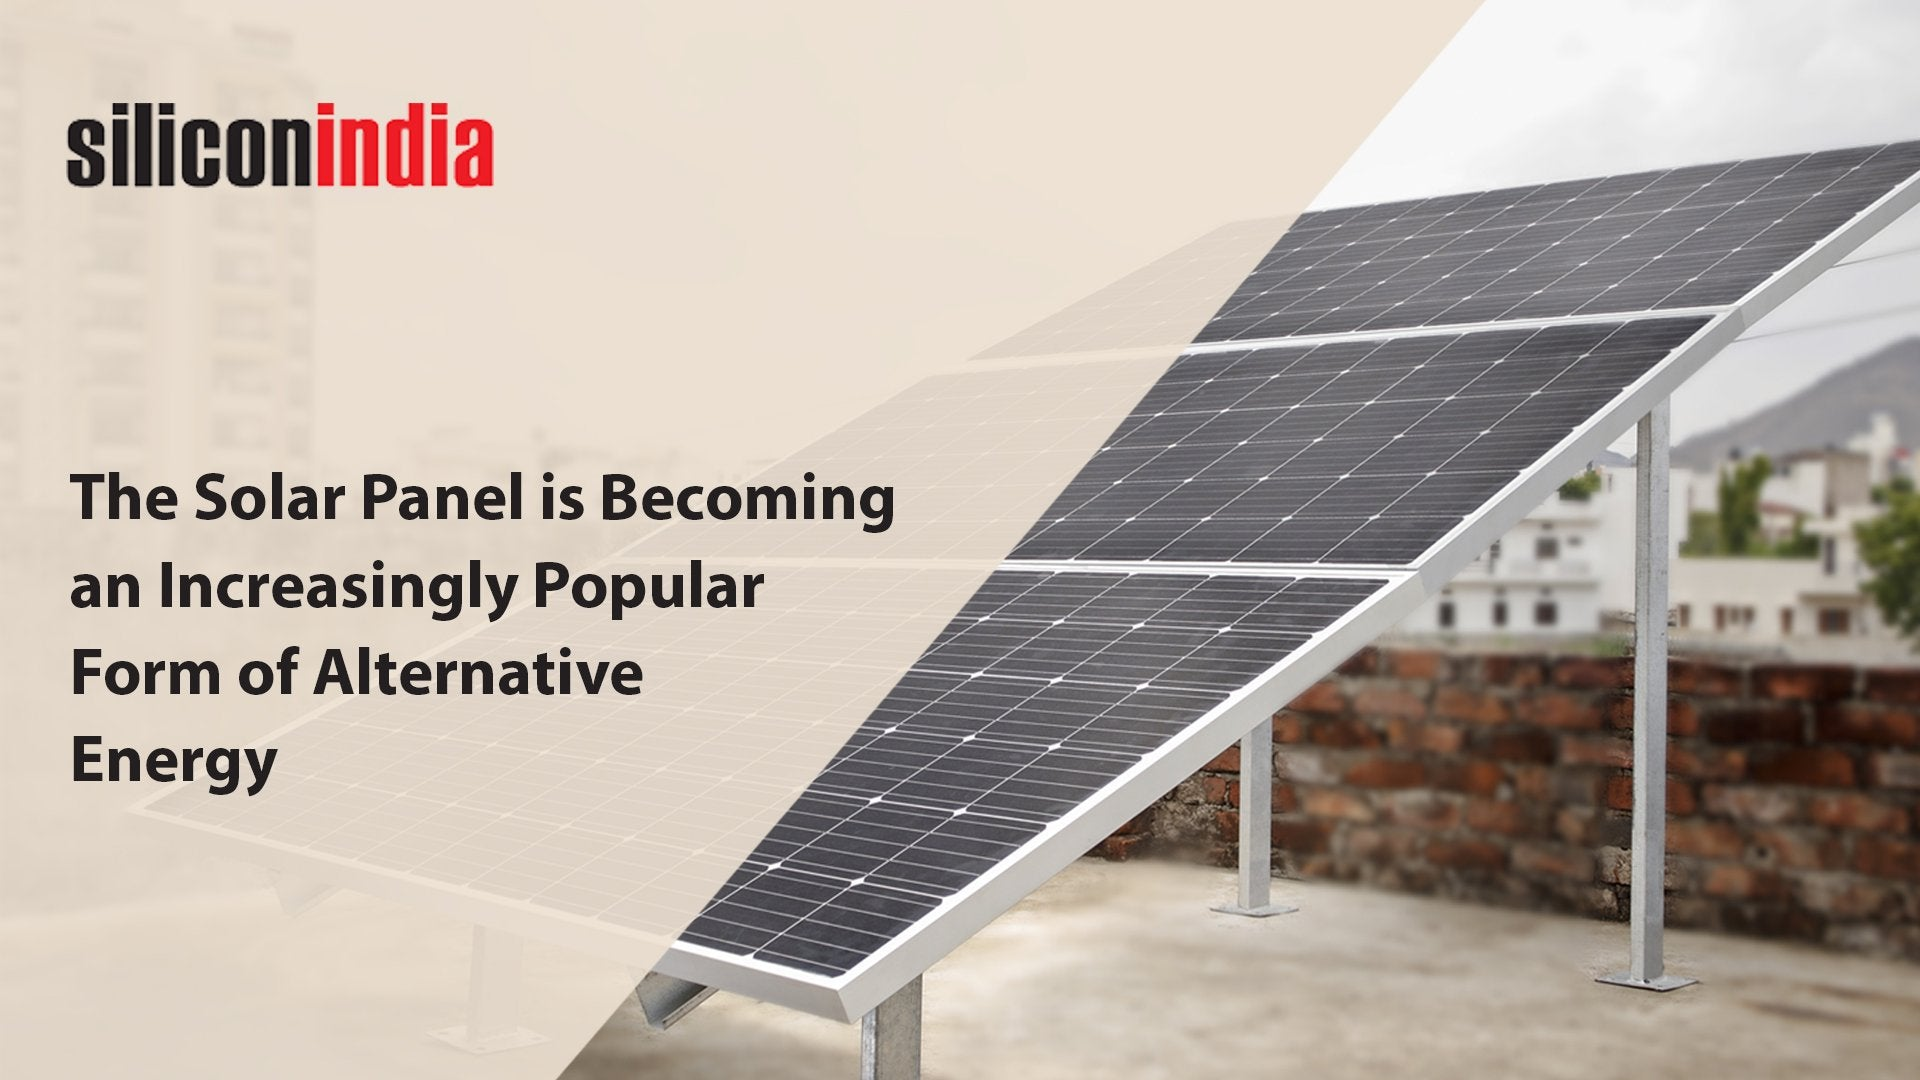 The Solar Panel is Becoming an Increasingly Popular Form of Alternative Energy